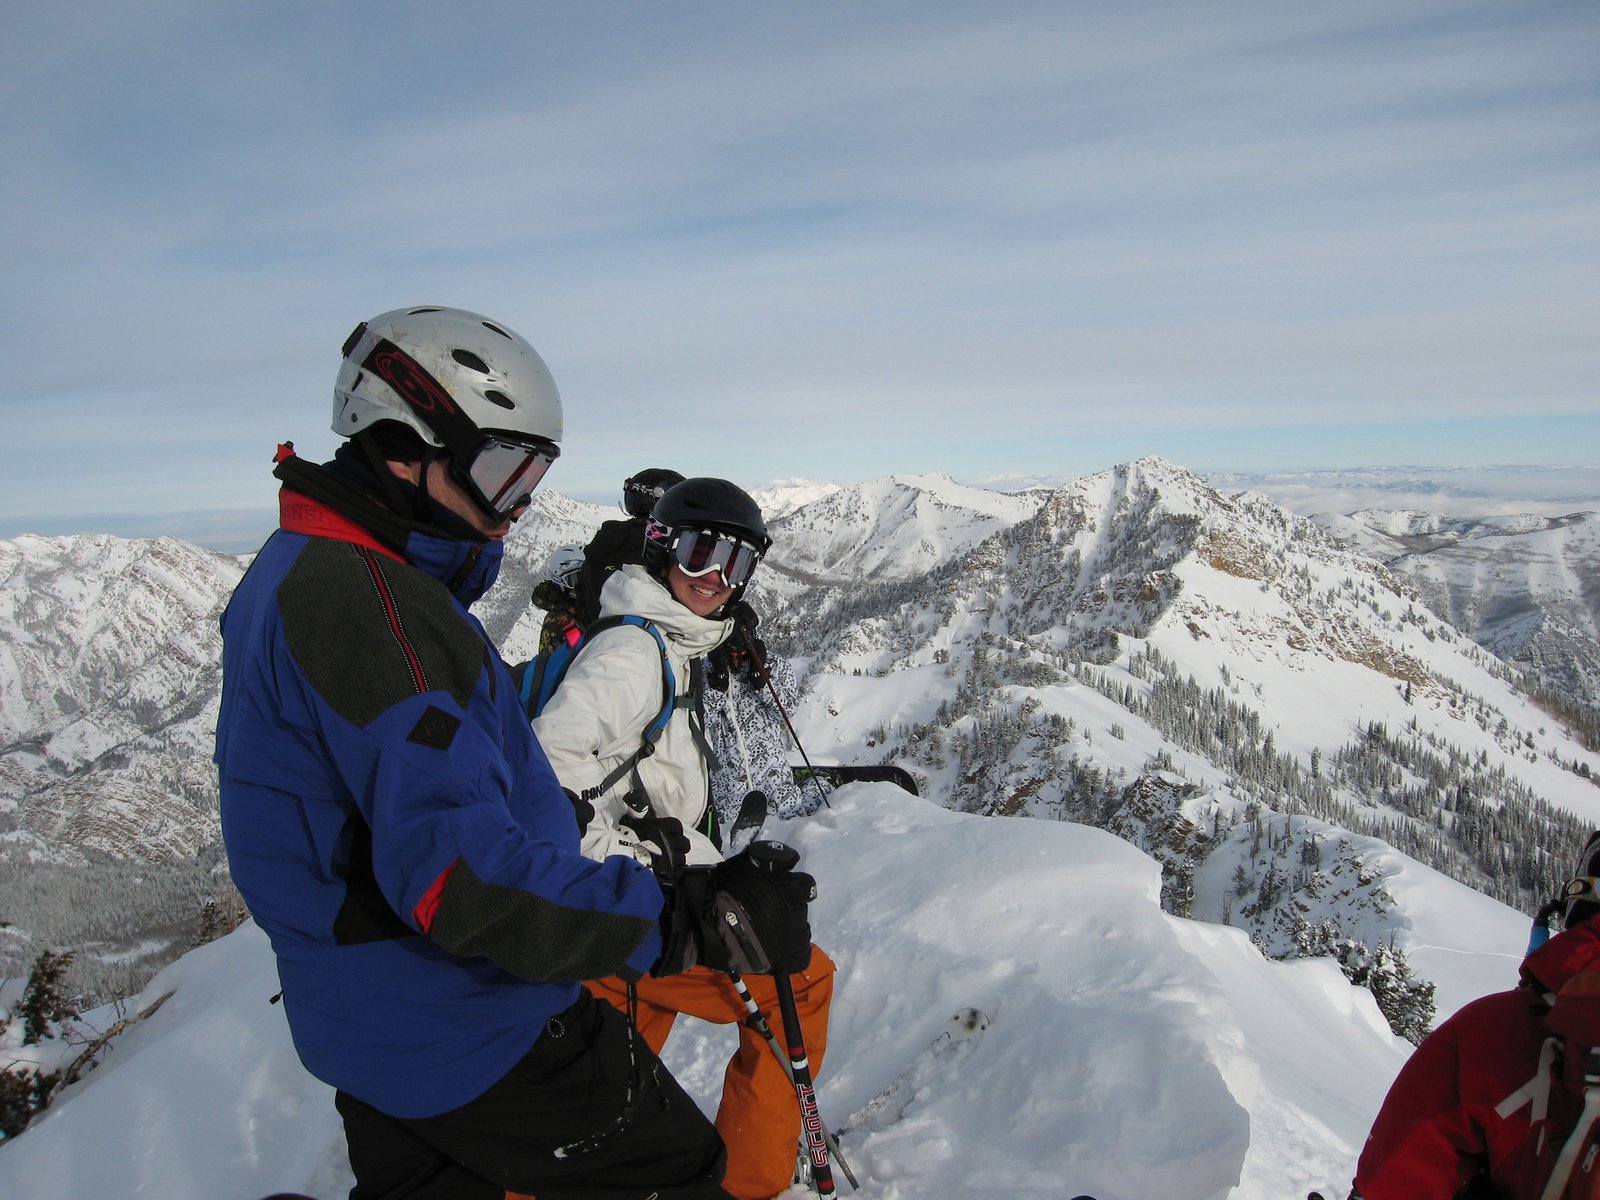 Right after the heli dropped us, gettin ready for run one